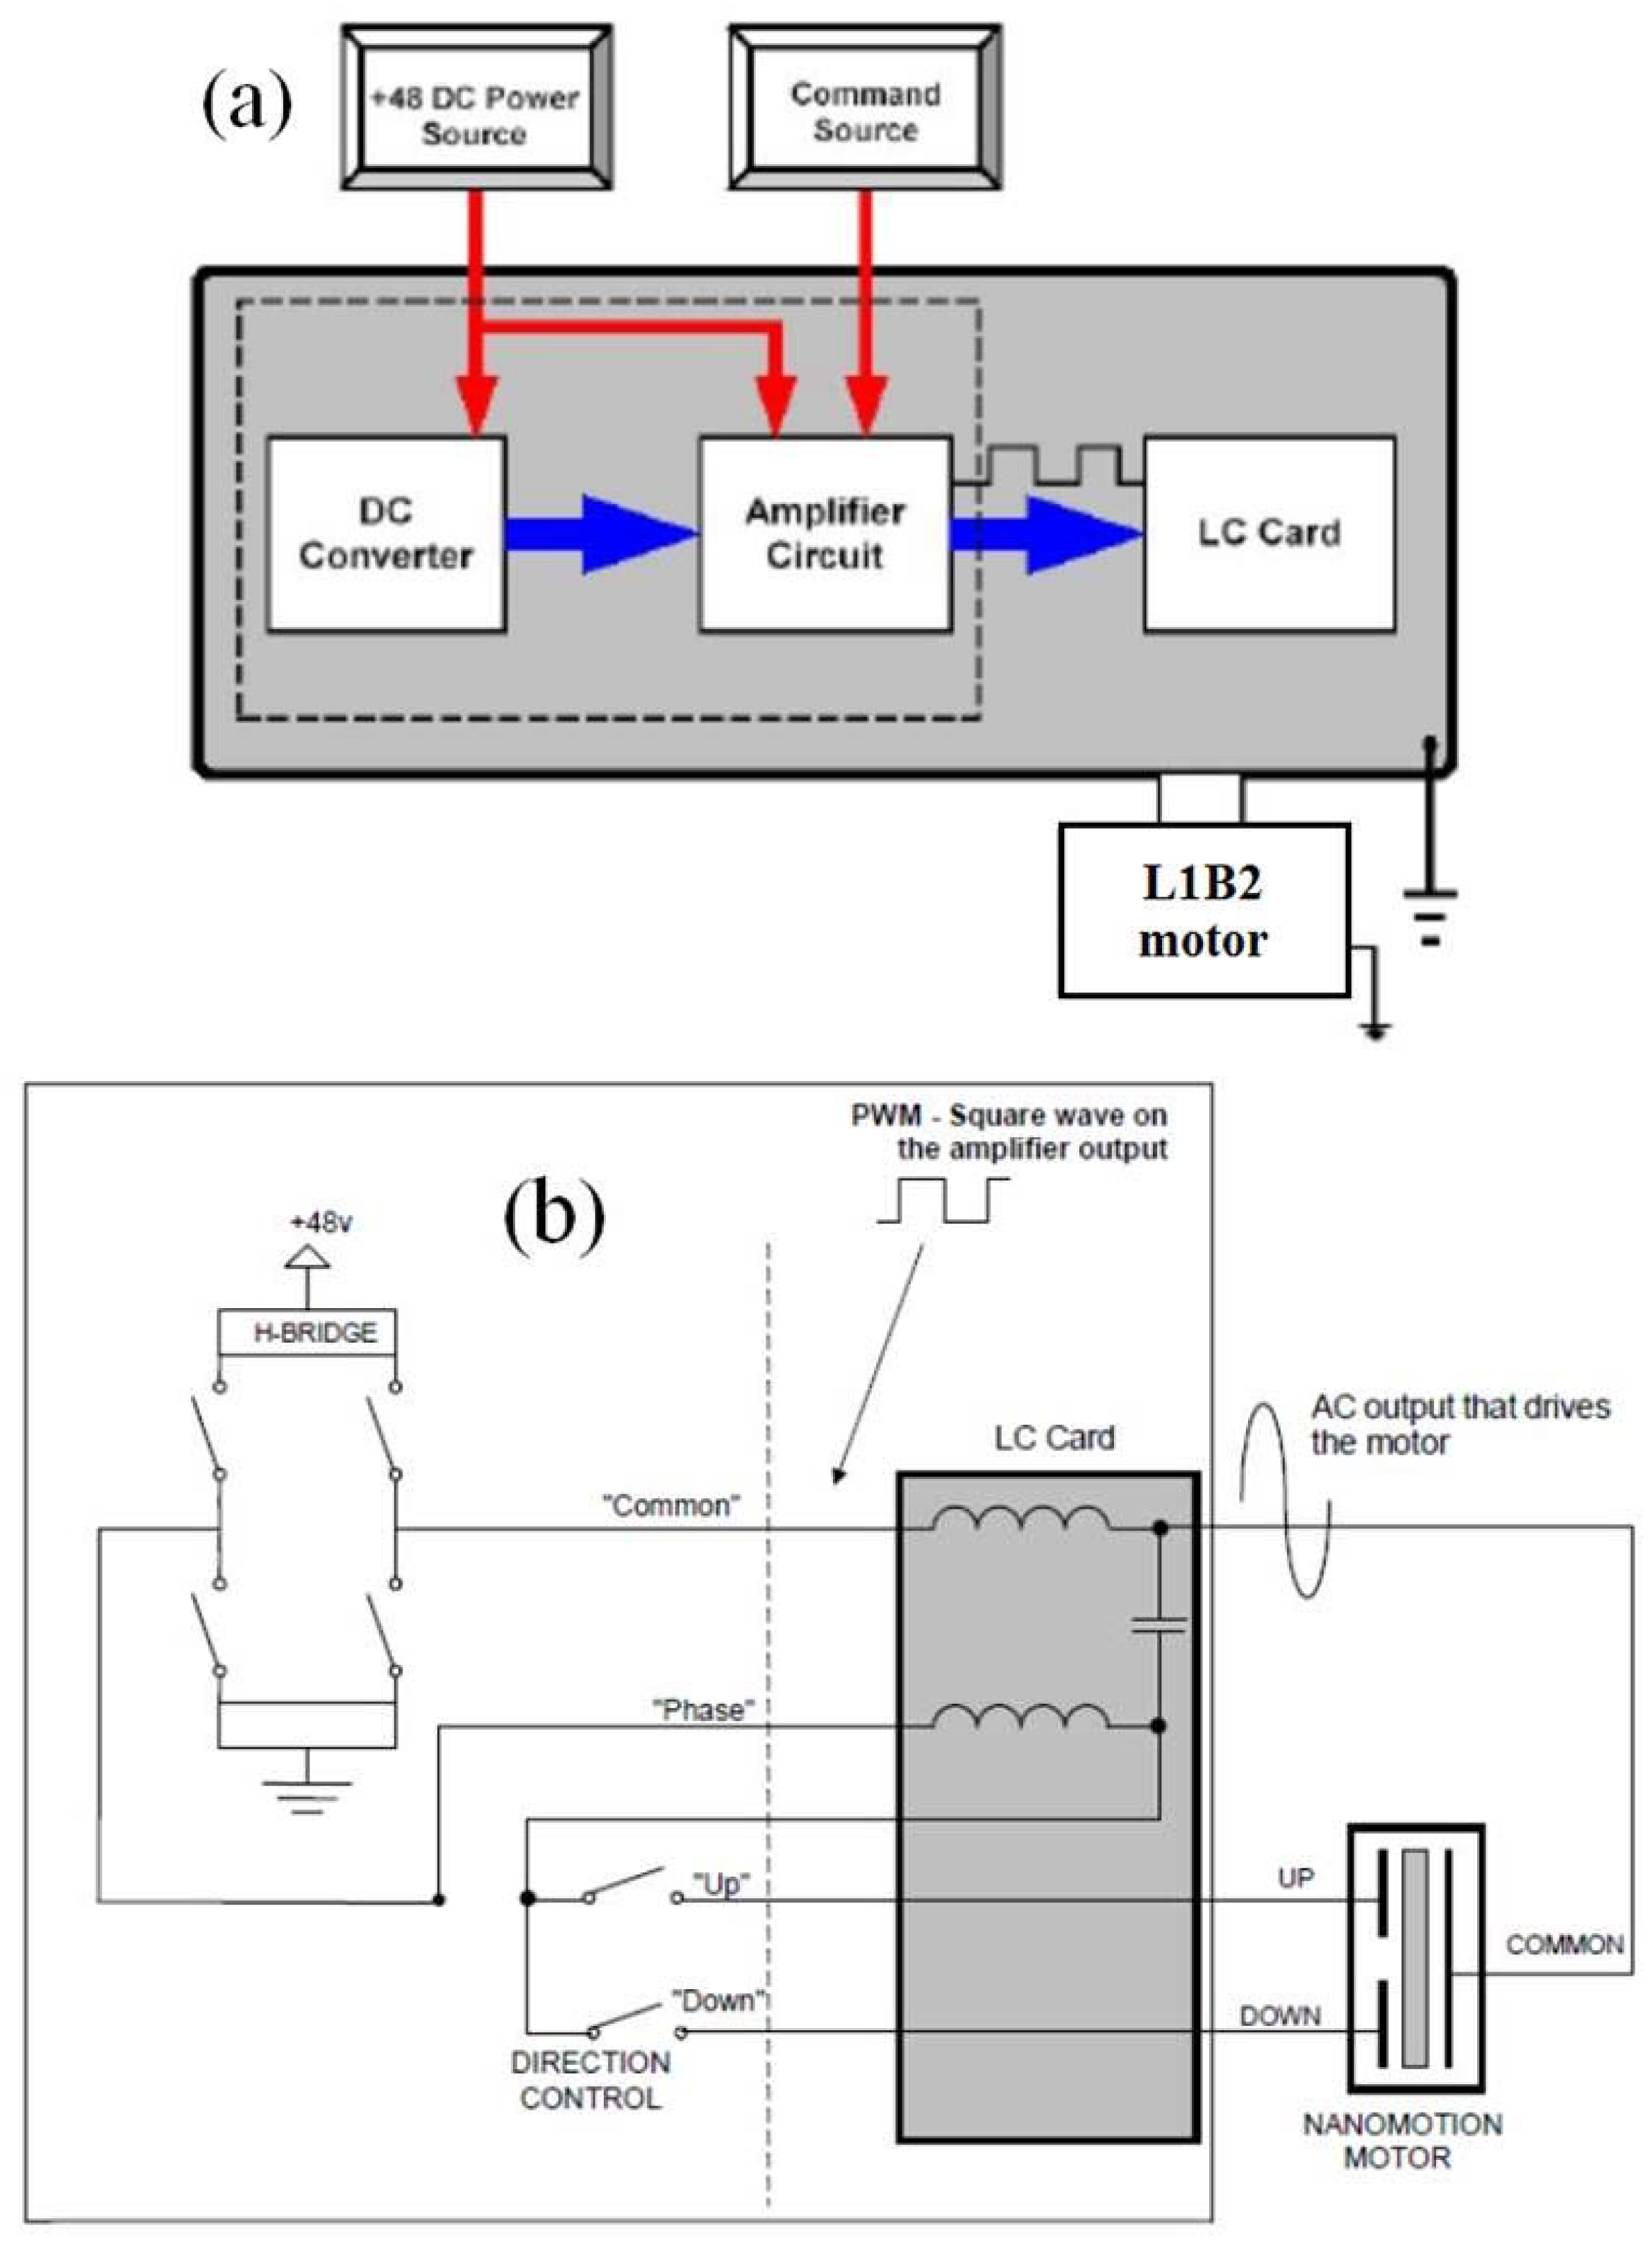 Actuators Free Full Text Performance And Applications Of L1b2 Highvoltage Amplifier Circuit Diagram For Piezoelectric Ceramic 05 00015 G003 1024 Figure 3 Schematic Representation